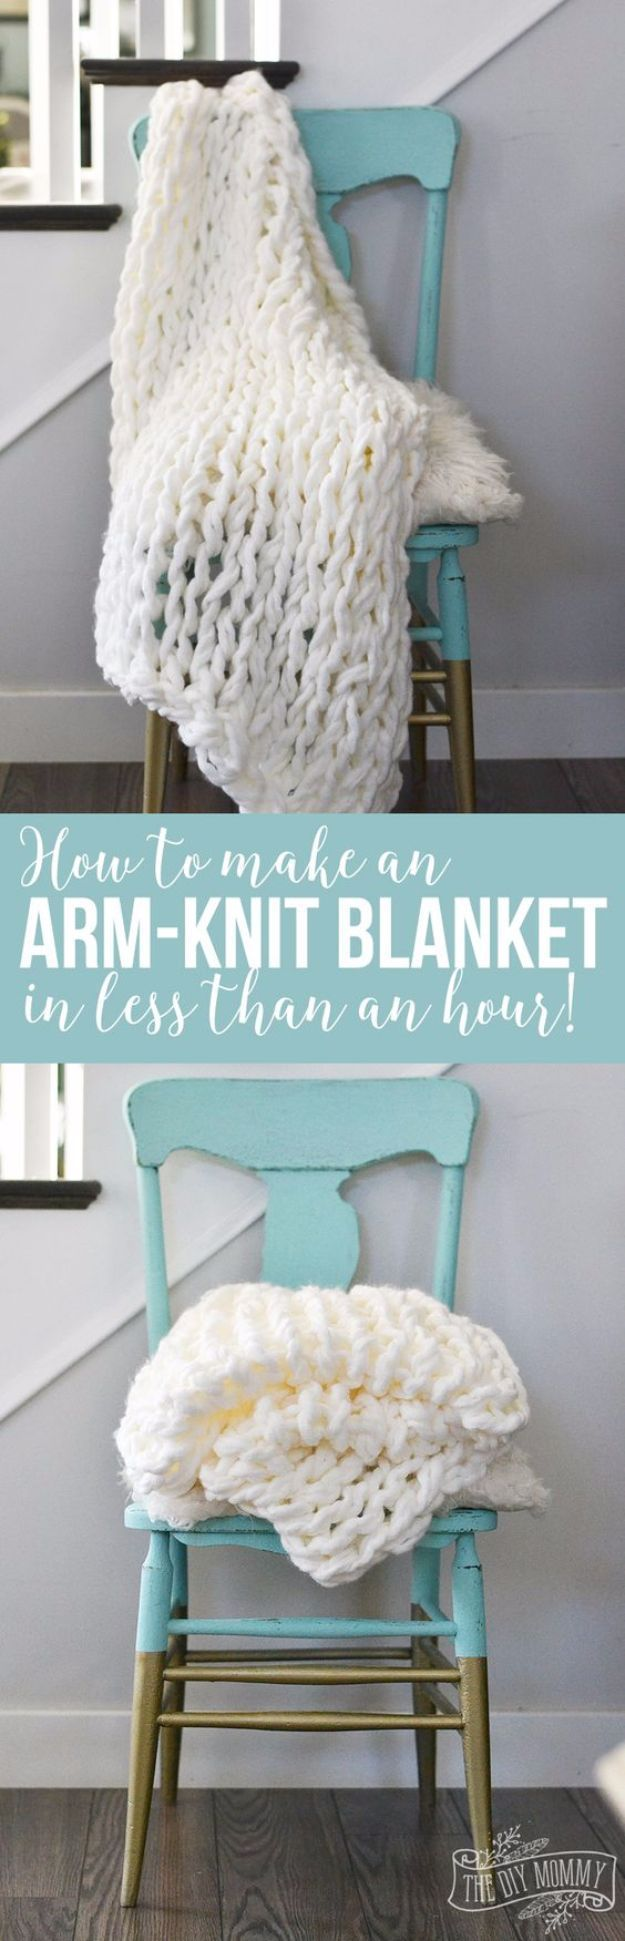 DIY Gift for the Office - Arm Knit Blanket - DIY Gift Ideas for Your Boss and Coworkers - Cheap and Quick Presents to Make for Office Parties, Secret Santa Gifts - Cool Mason Jar Ideas, Creative Gift Baskets and Easy Office Christmas Presents http://diyjoy.com/diy-gifts-office